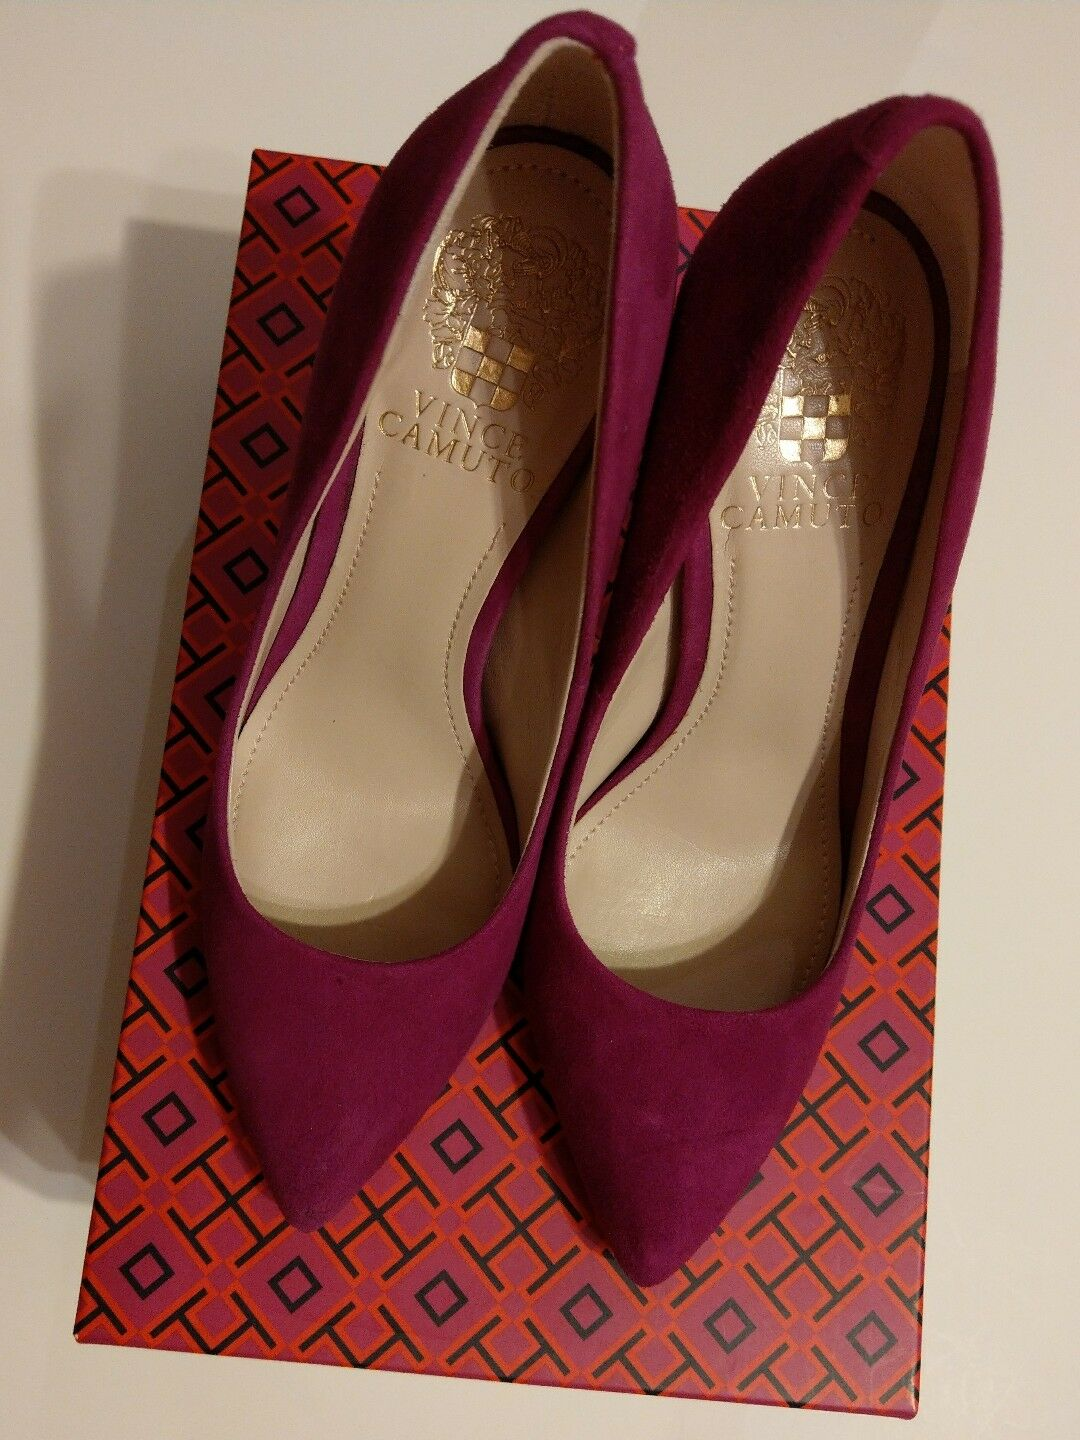 Vince Camuto Suede Pointy Pump Größe 35.5 /5.5 perfect condition